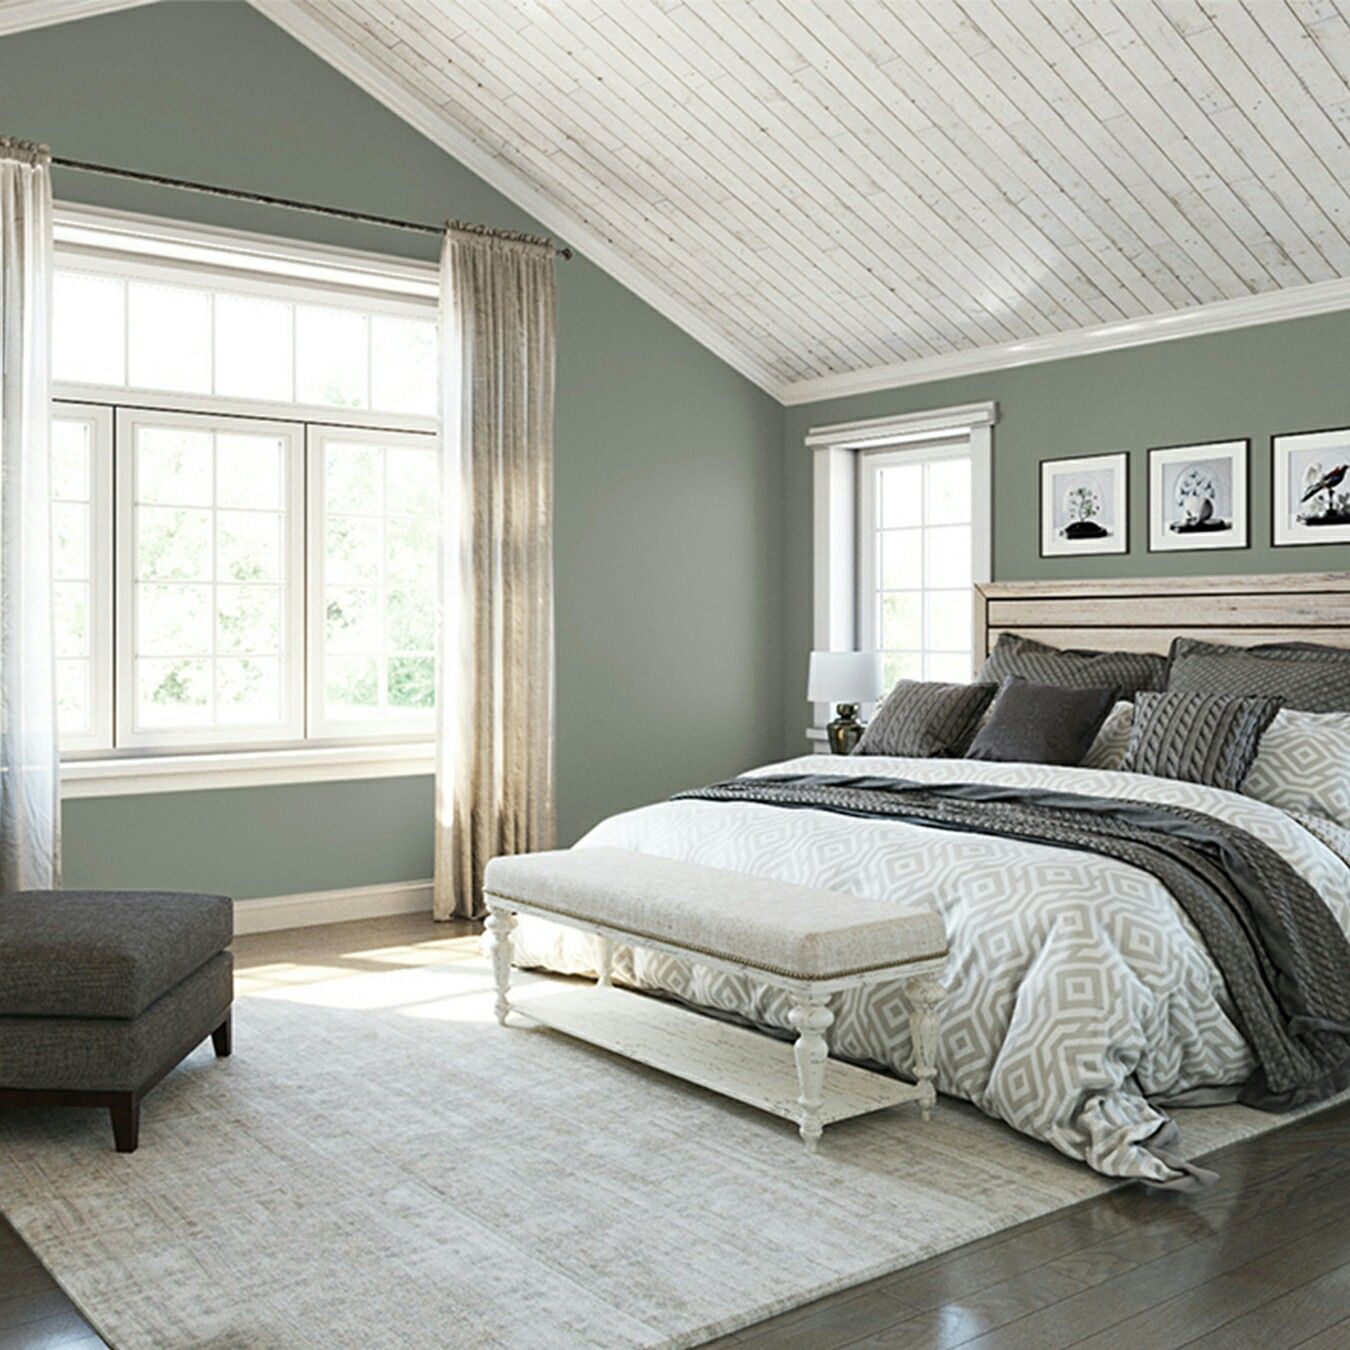 Pin by Athya on Home Bedroom paint colors master